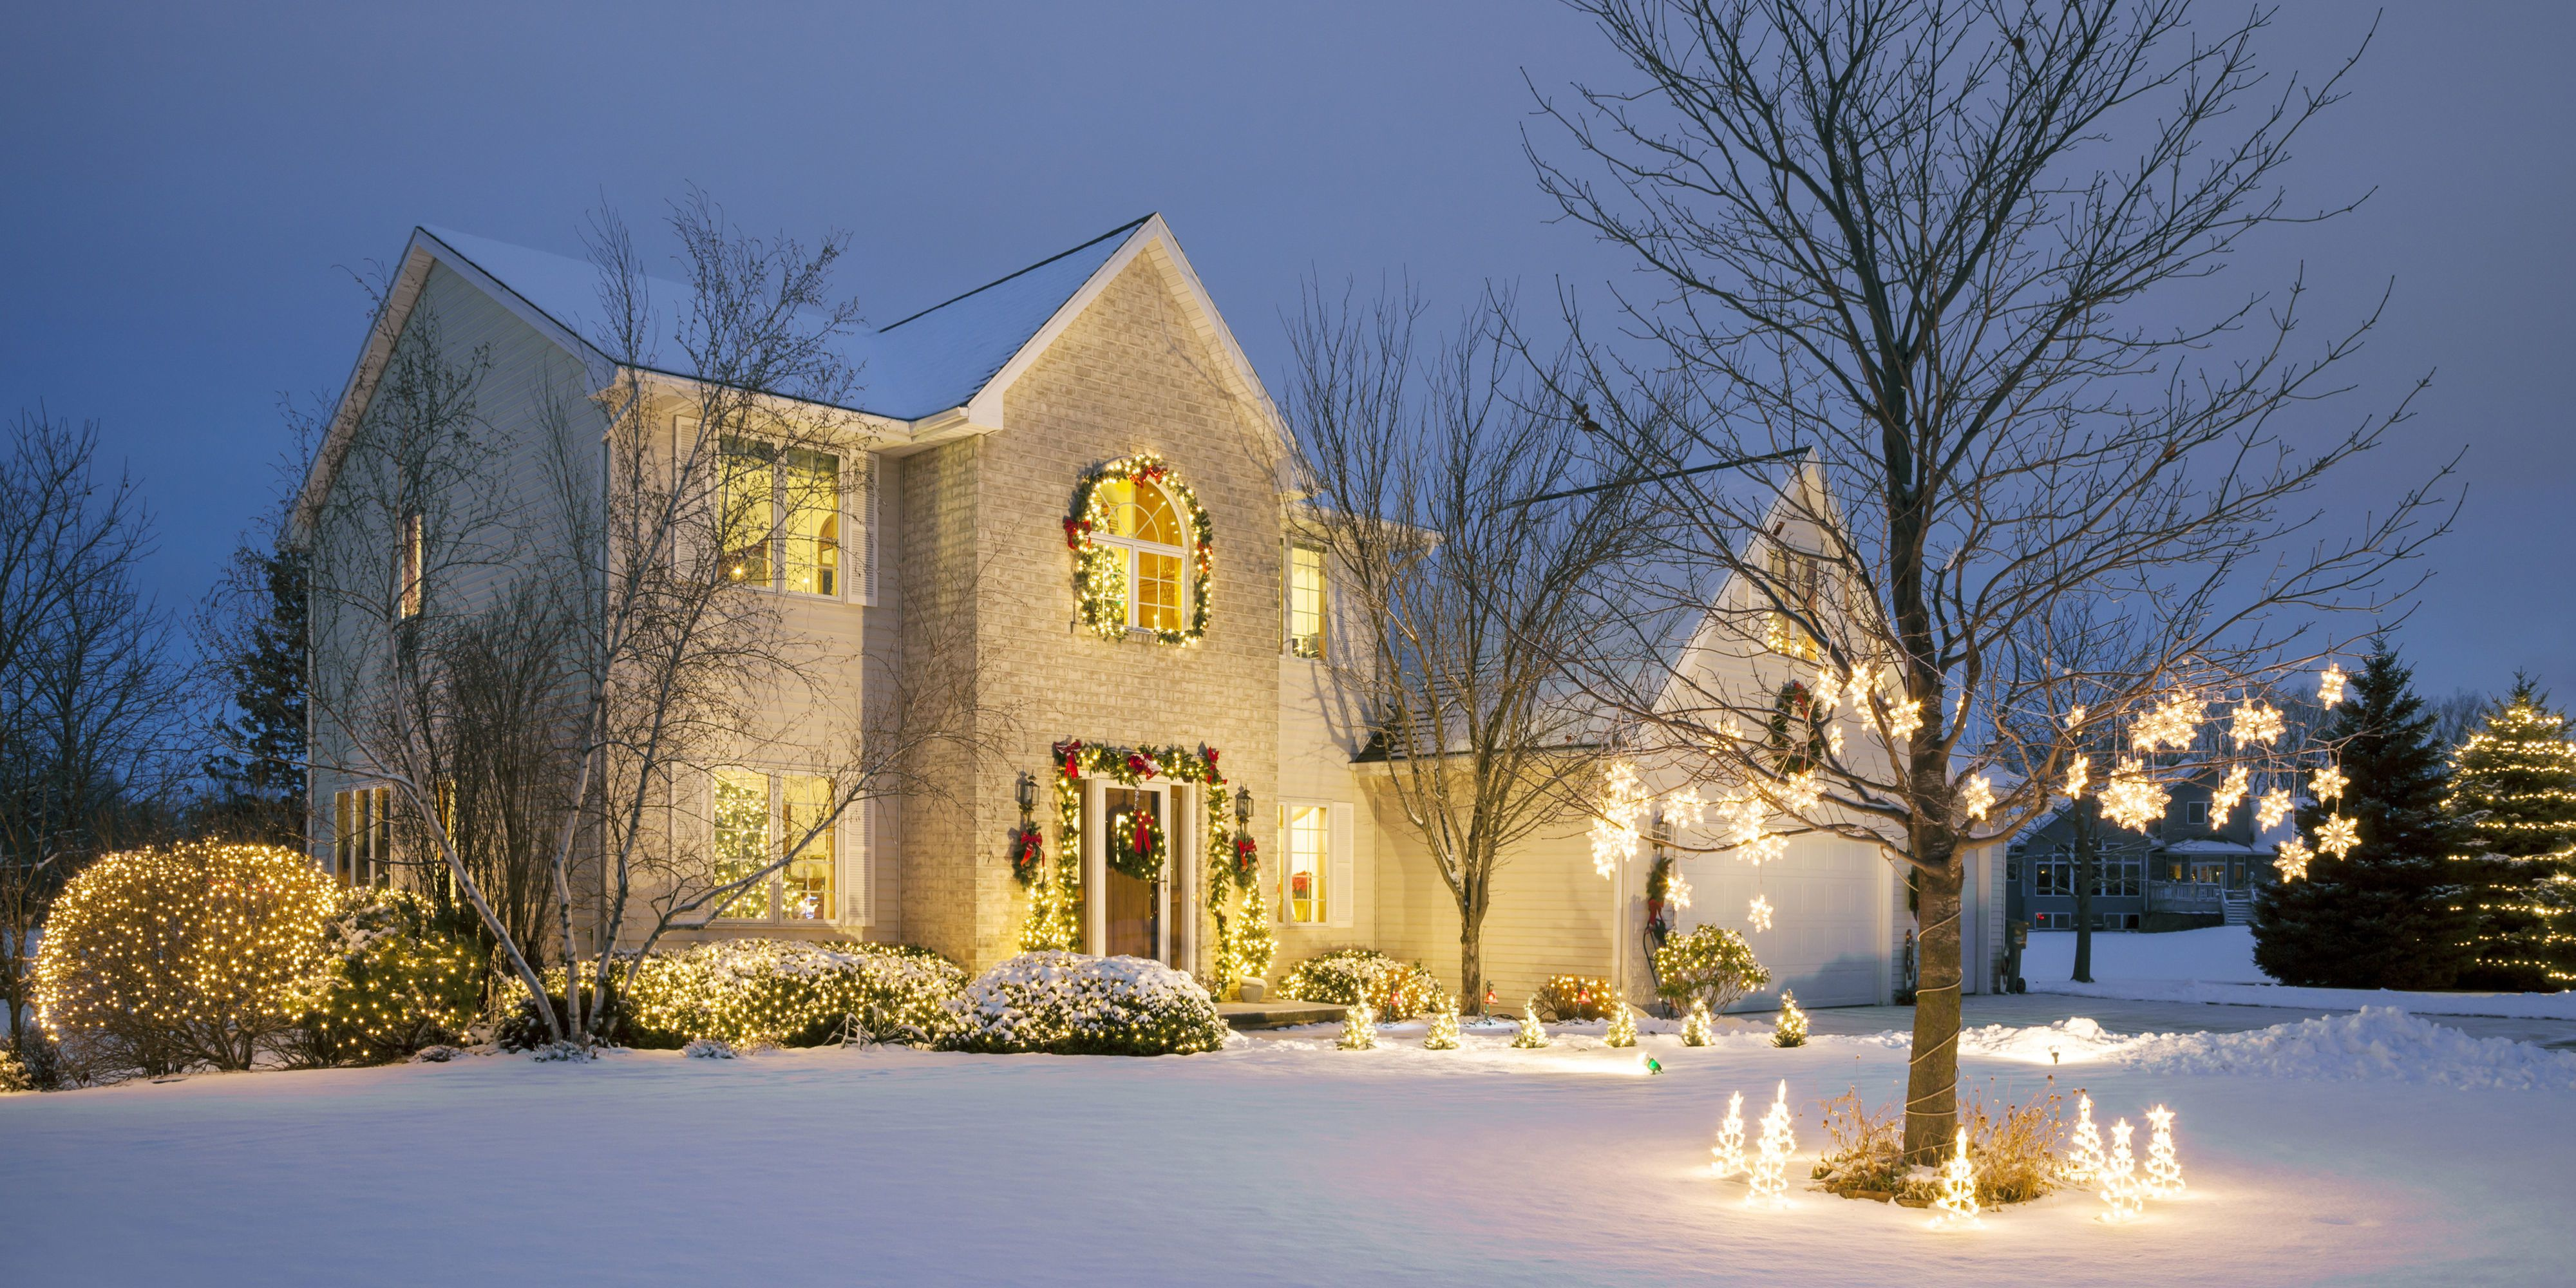 15 Christmas Light Ideas That Will Top Your Neighbor's House